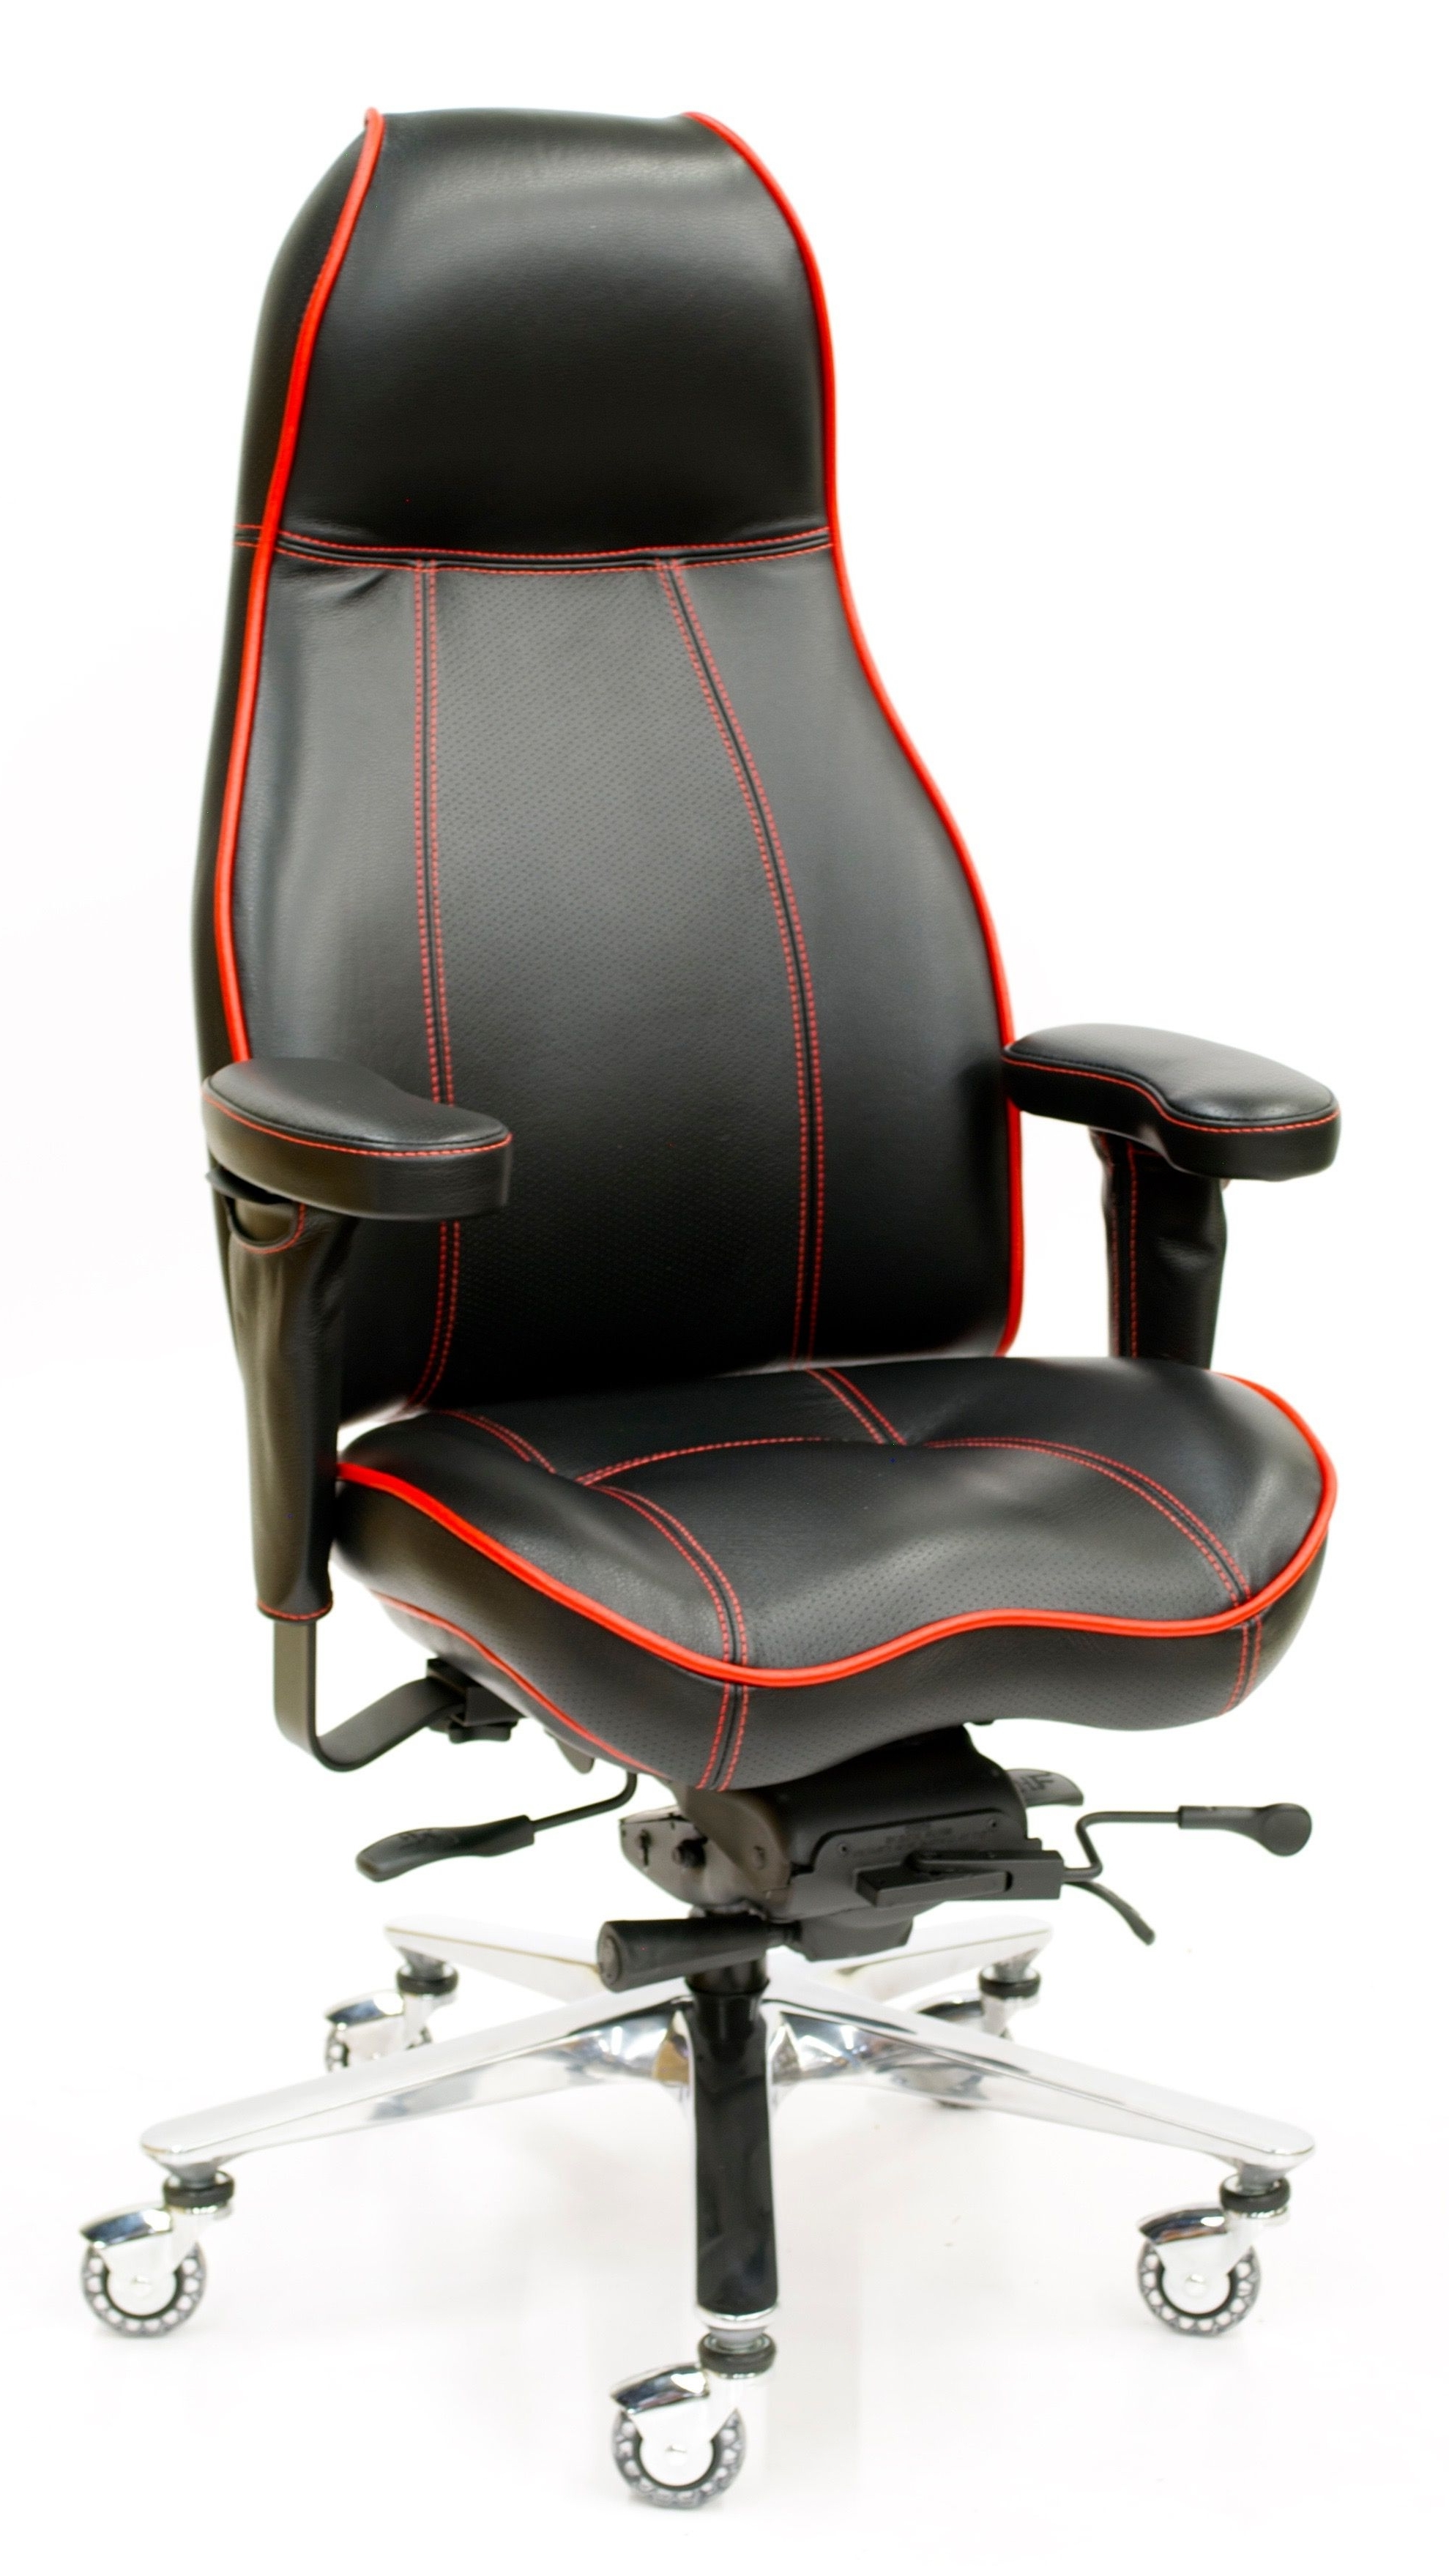 Fashionable Thick Red Contrast Stitching On 2390 High Back Ultimate Executive Intended For Premium Executive Office Chairs (View 14 of 20)